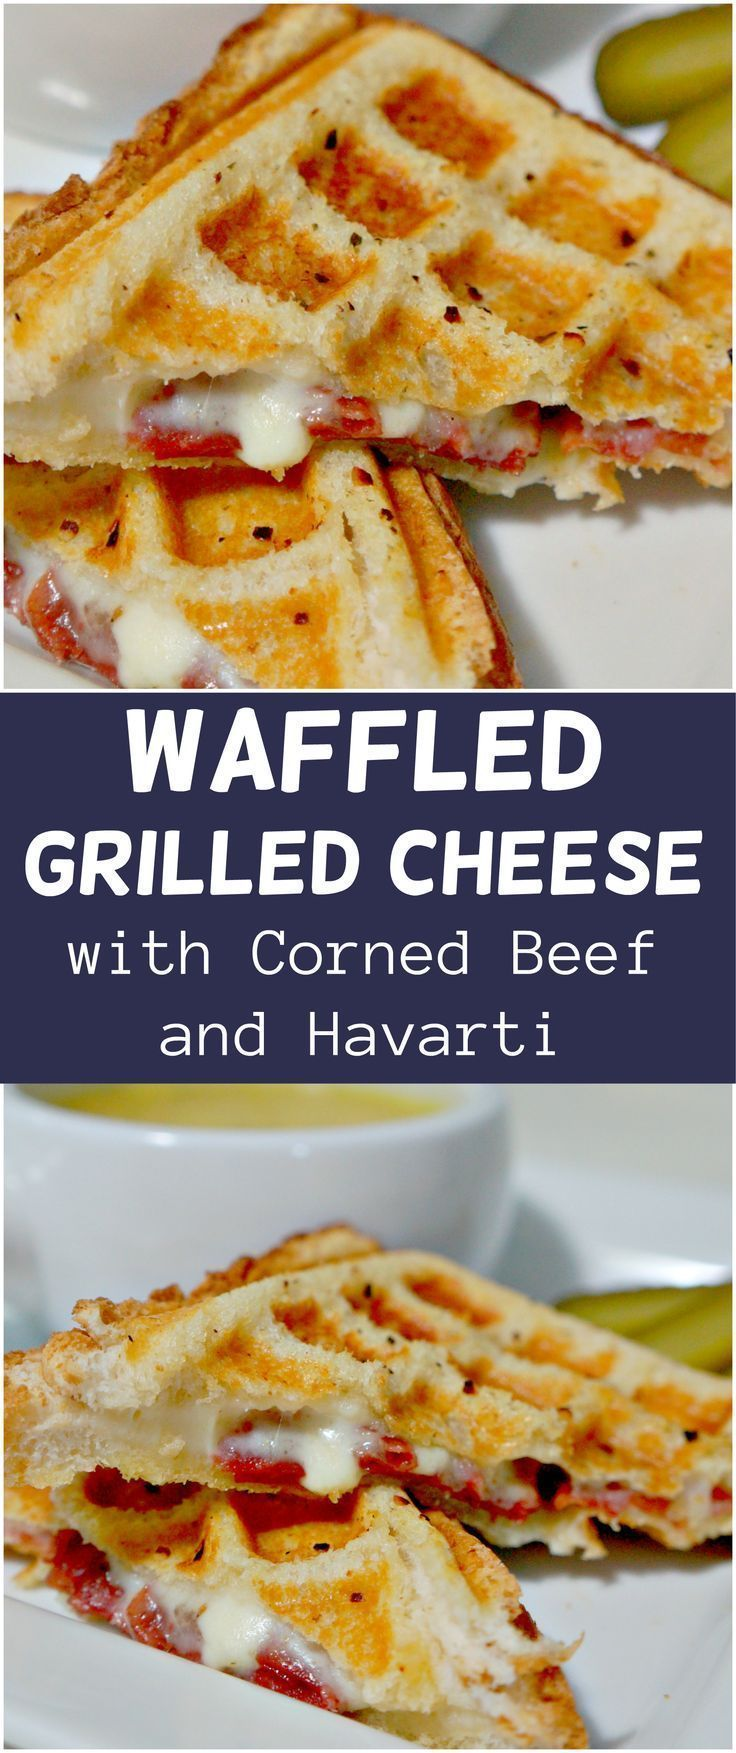 Waffled Grilled Cheese. Grilled cheese sandwich with corned beef and havarti cheese cooked in a waffle maker.